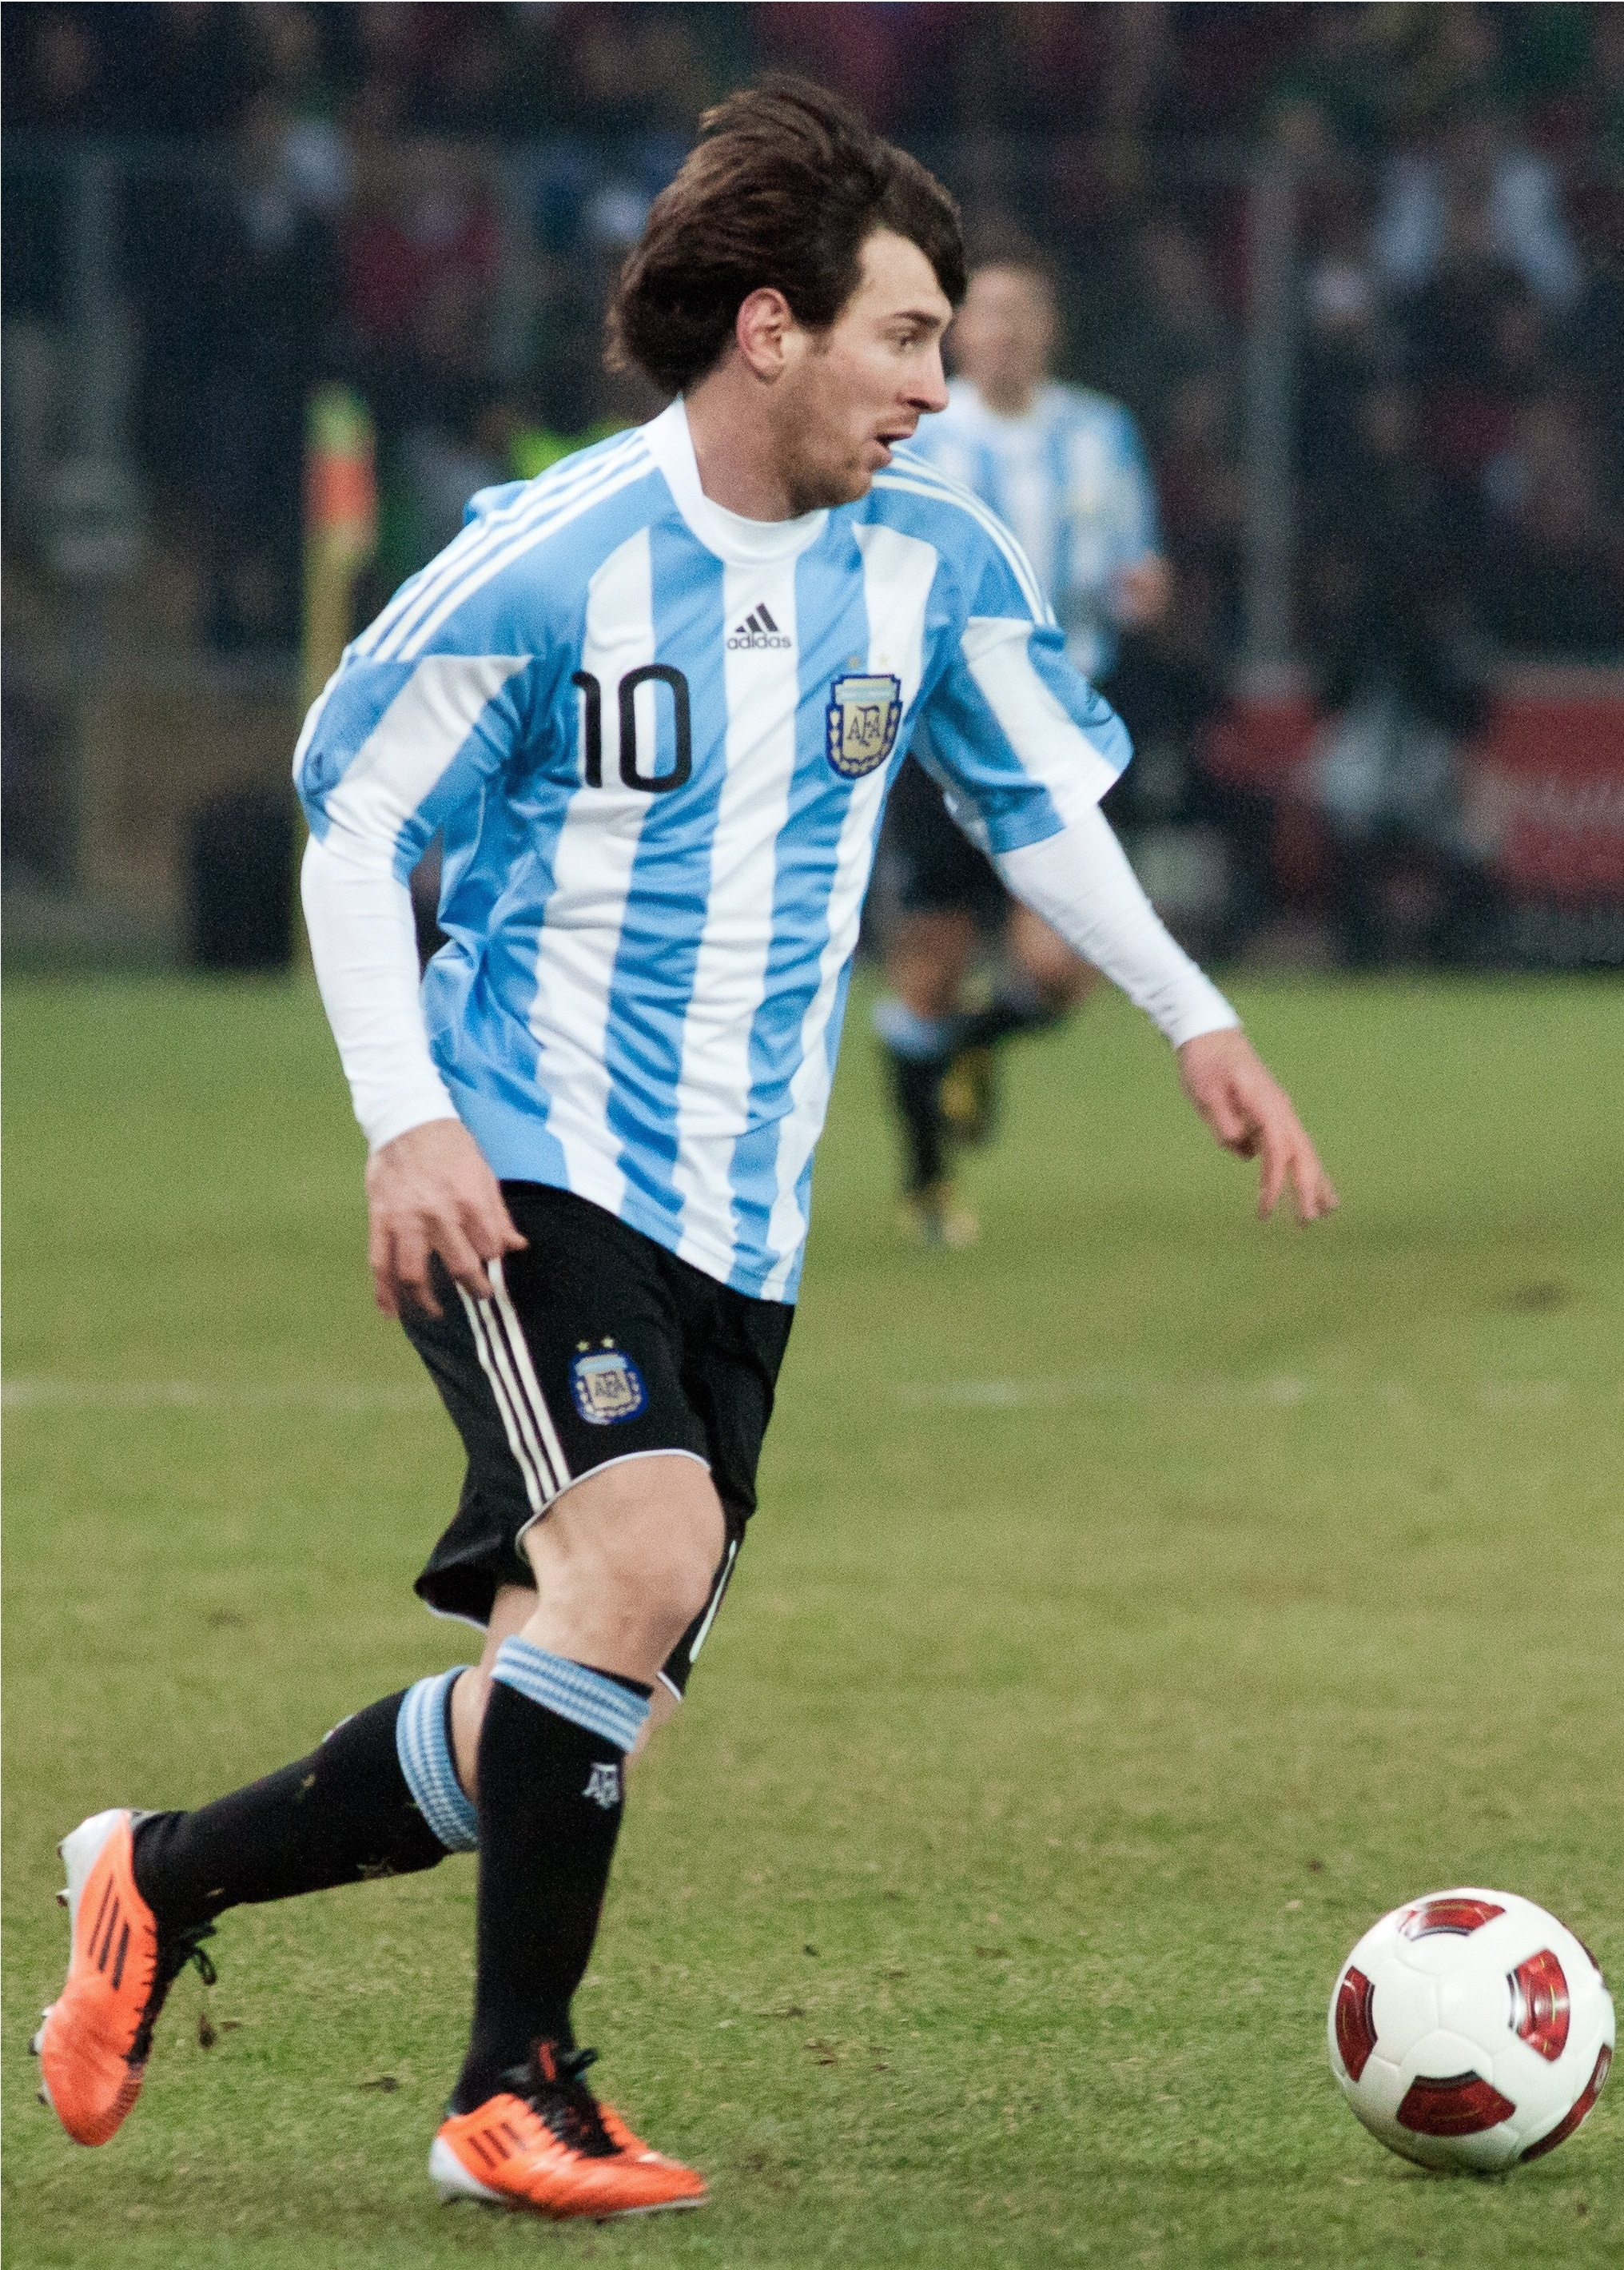 Pictures of Messi the Soccer Team Player On the Argentina